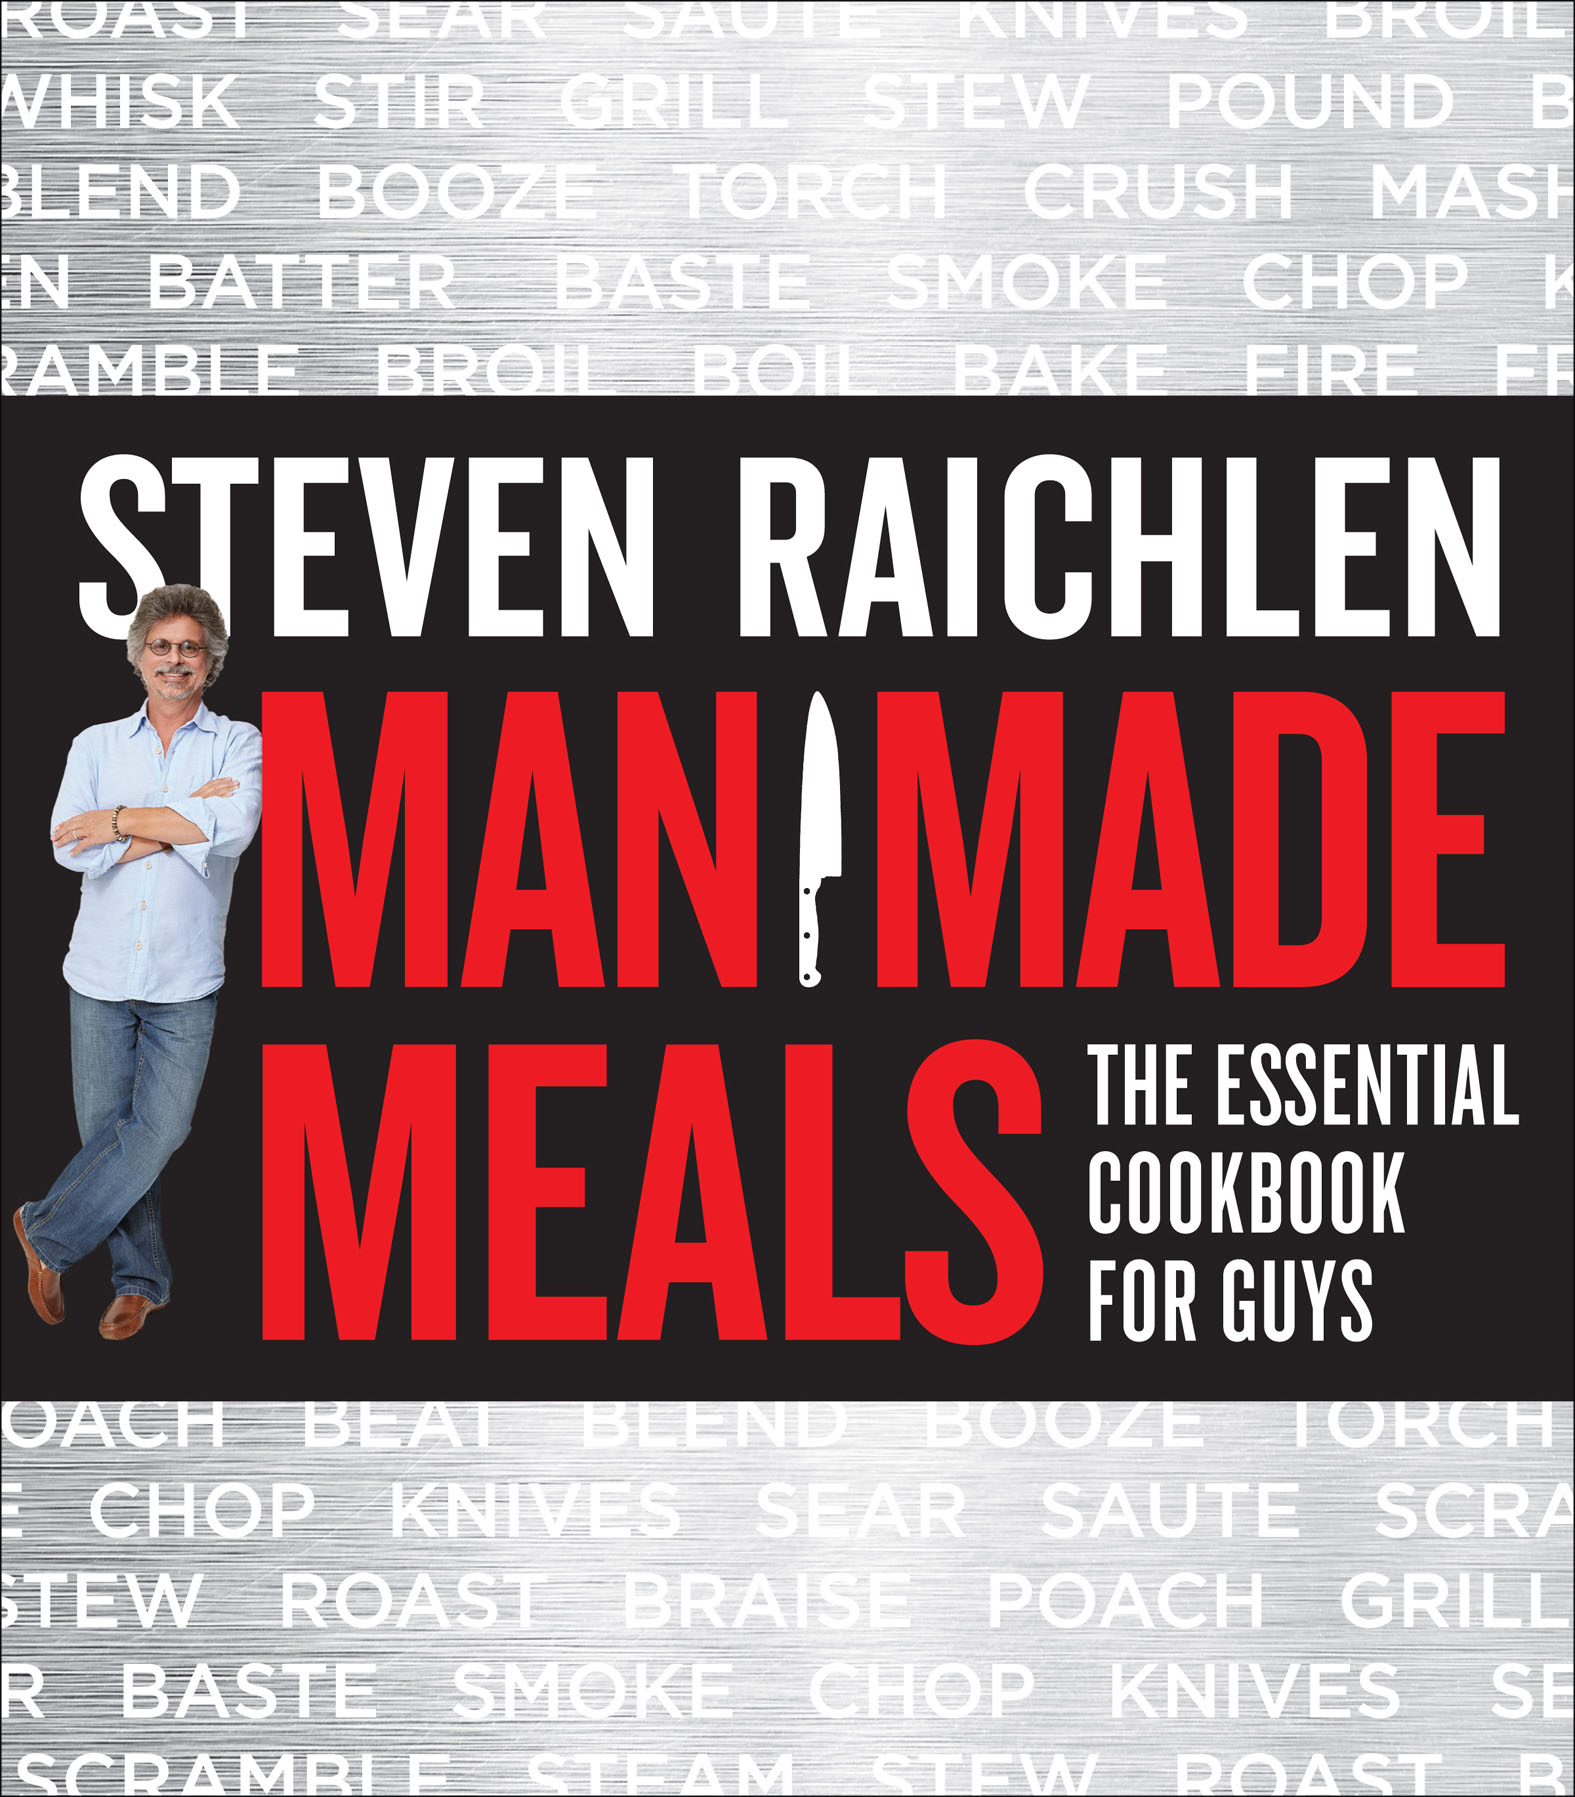 Man Made Meals The Essential Cookbook for Guys